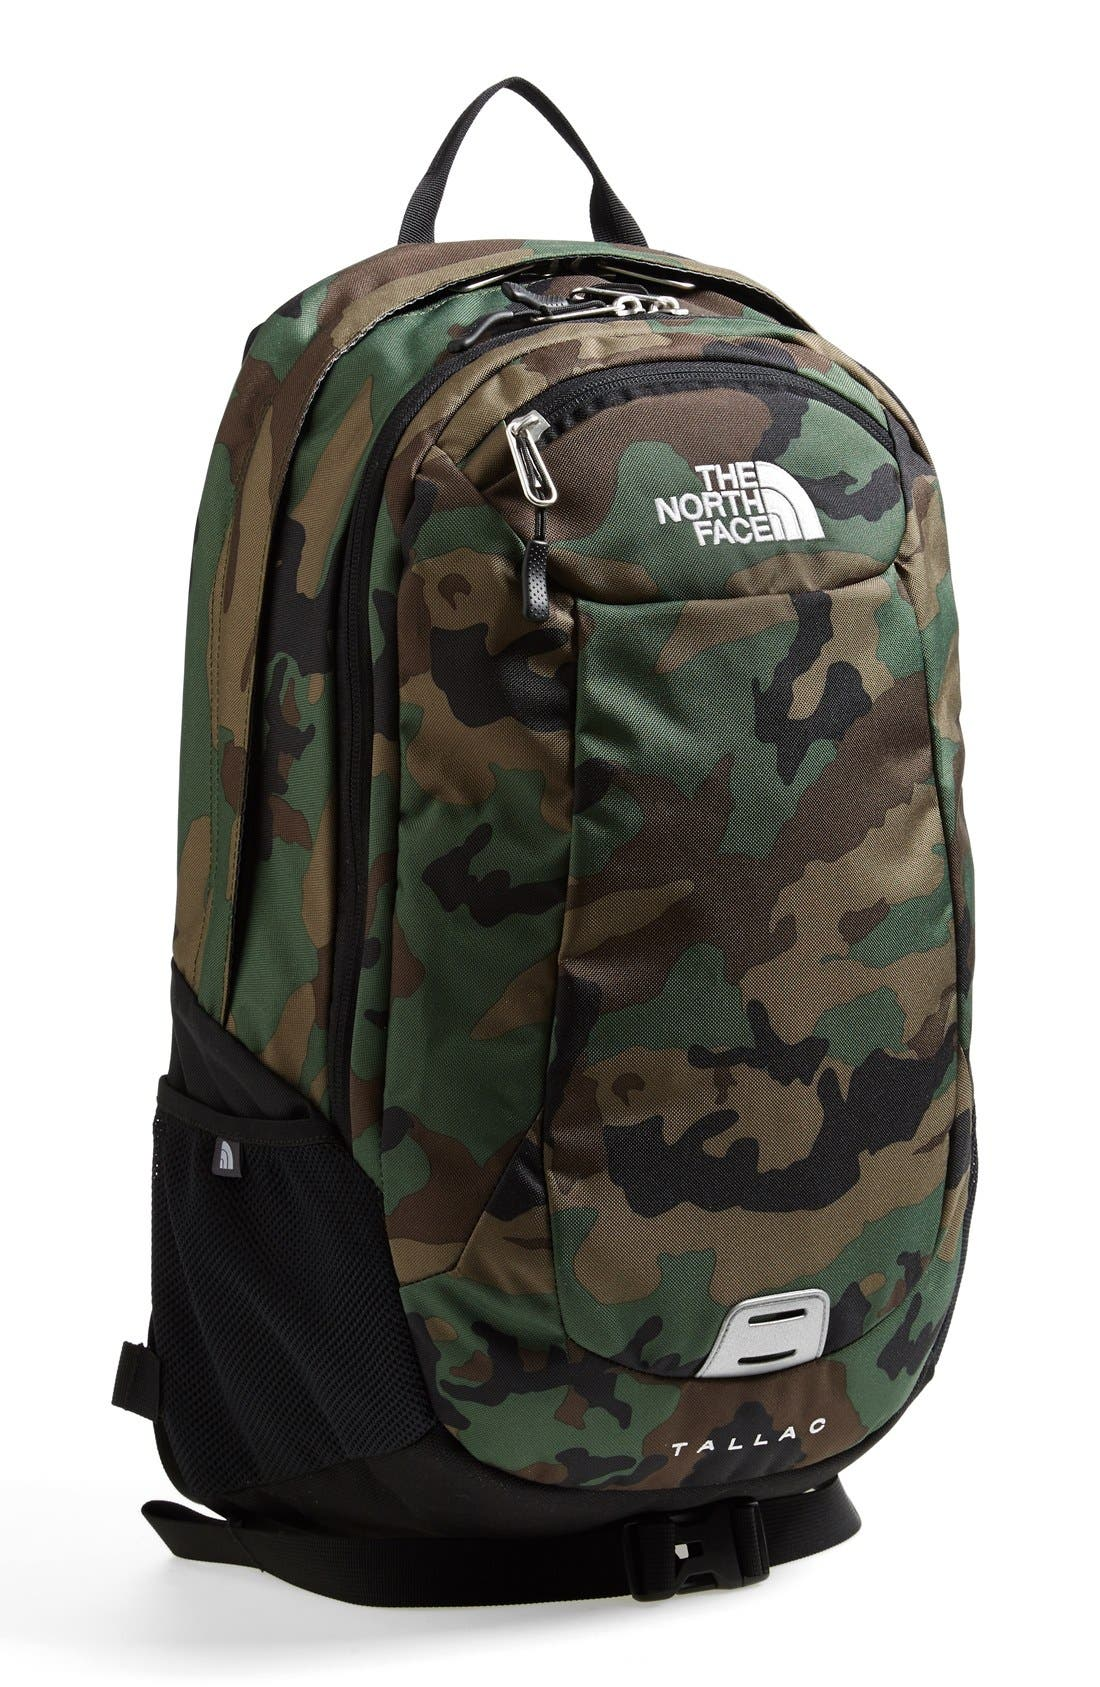 Alternate Image 1 Selected - The North Face 'Tallac' Backpack (Big Boys)